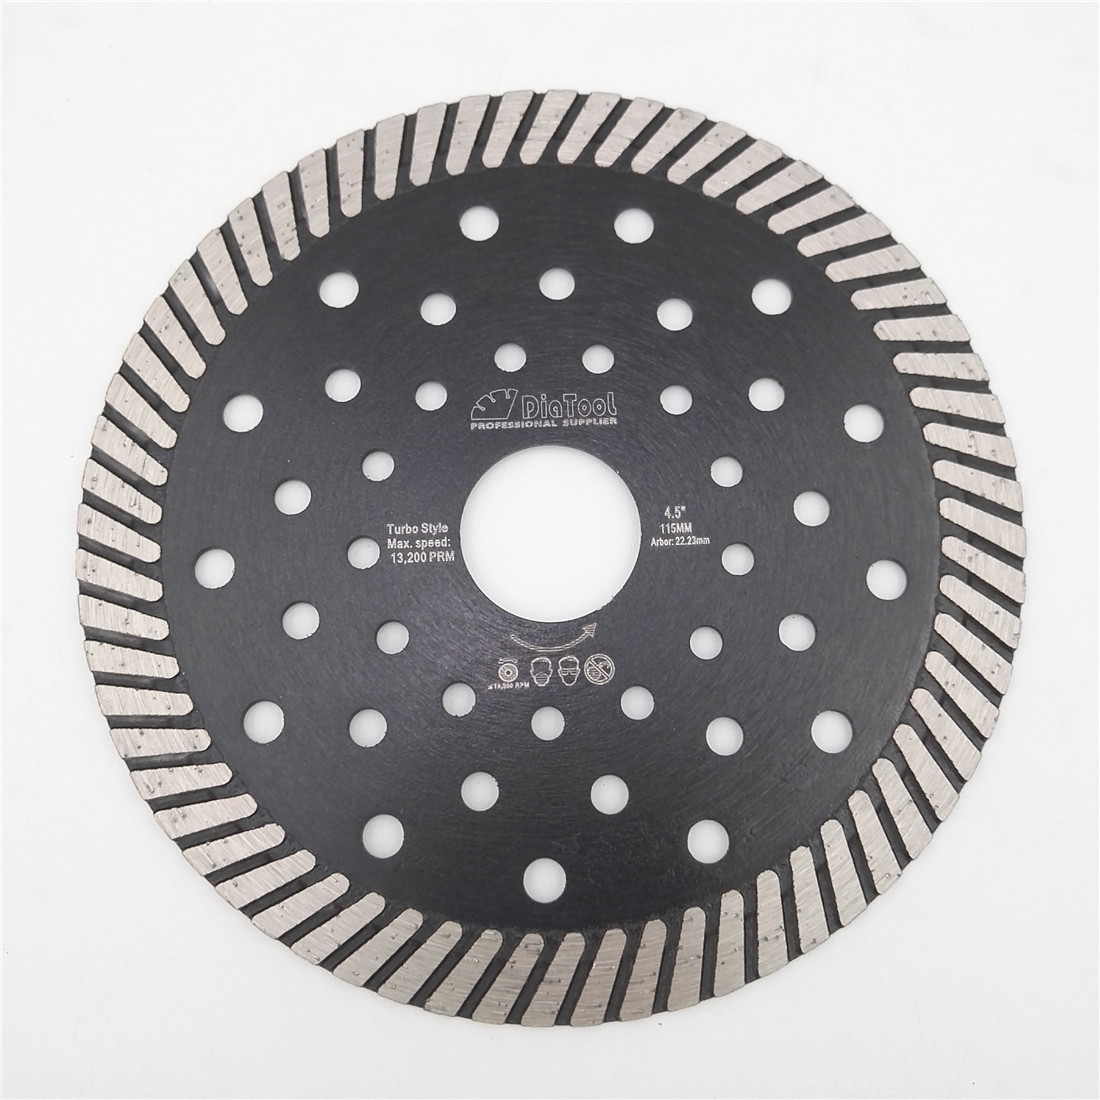 DIATOOL 4.5/5/7/9 Diamond Hot Pressed Turbo Blade Cutting Disc Granite Marble Concrete Masonry Sawblade Diamond Wheel Disc